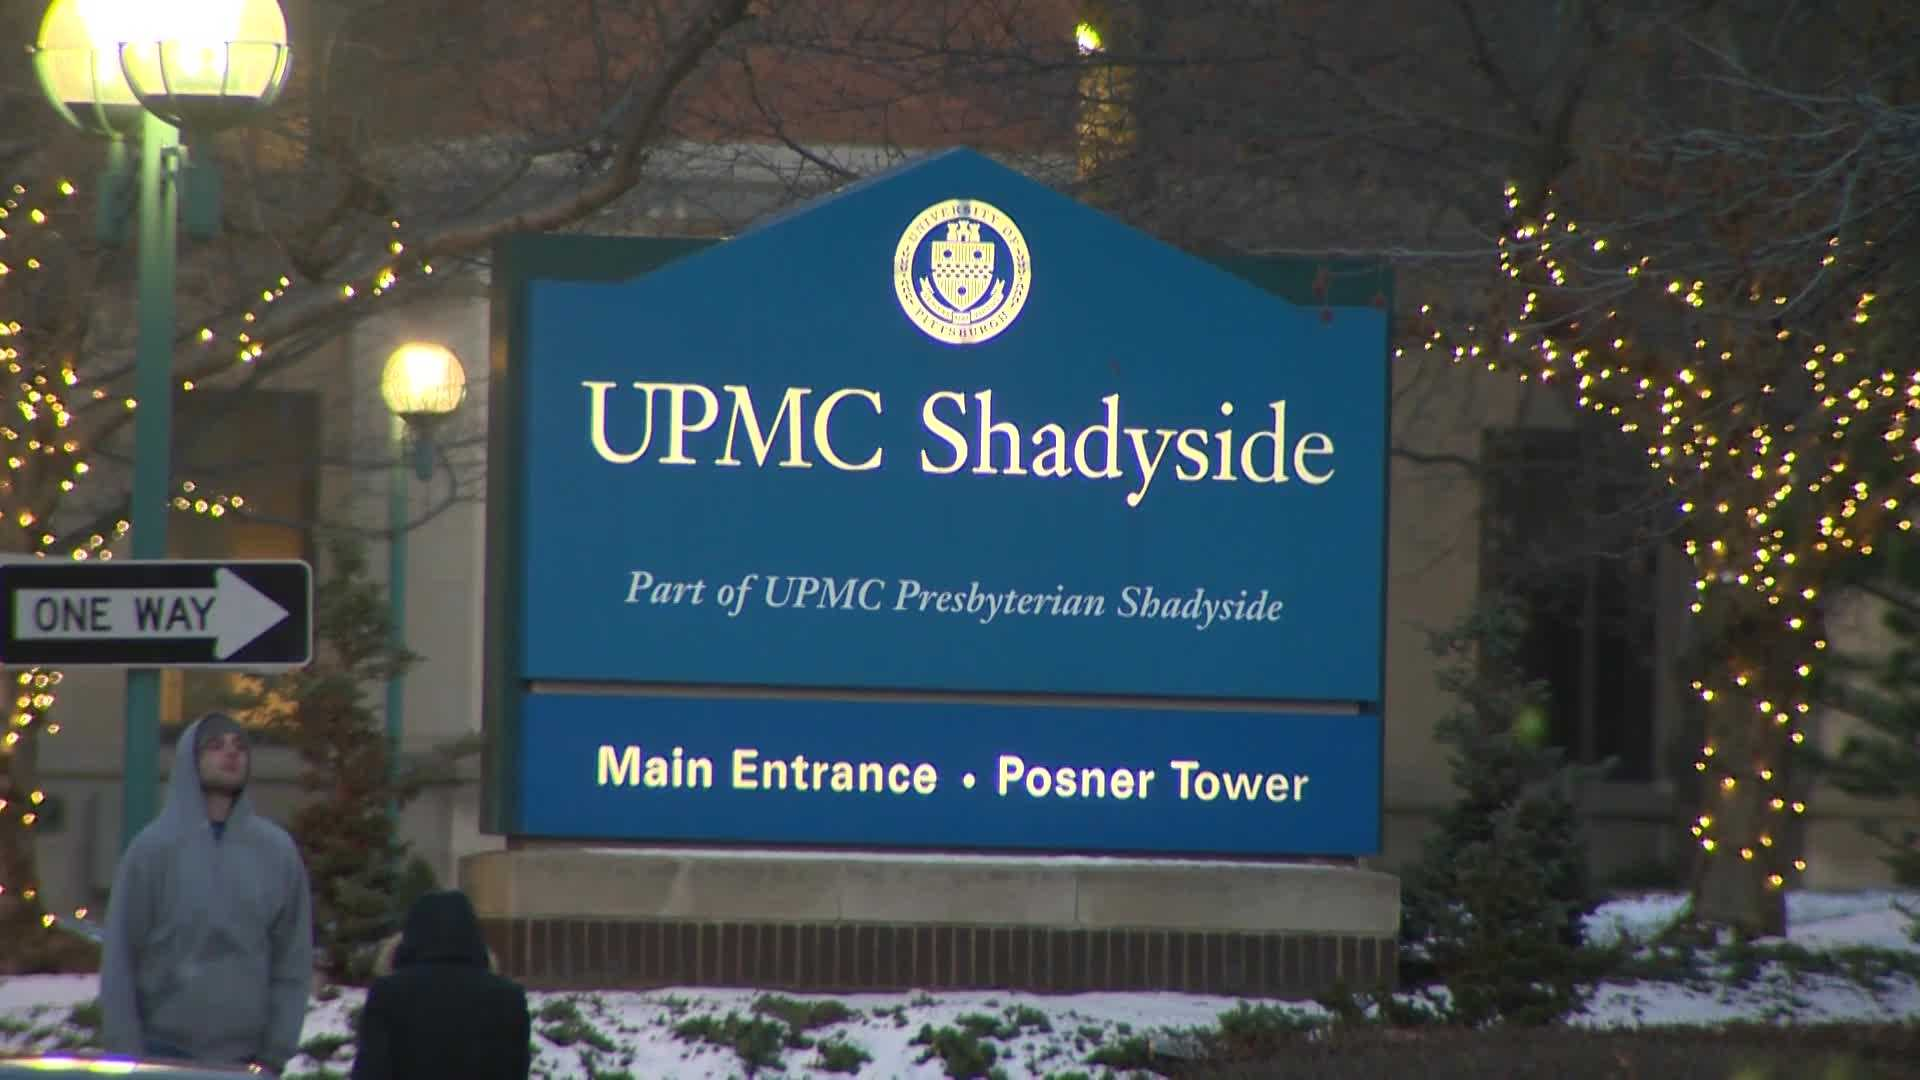 UPMC Shadyside